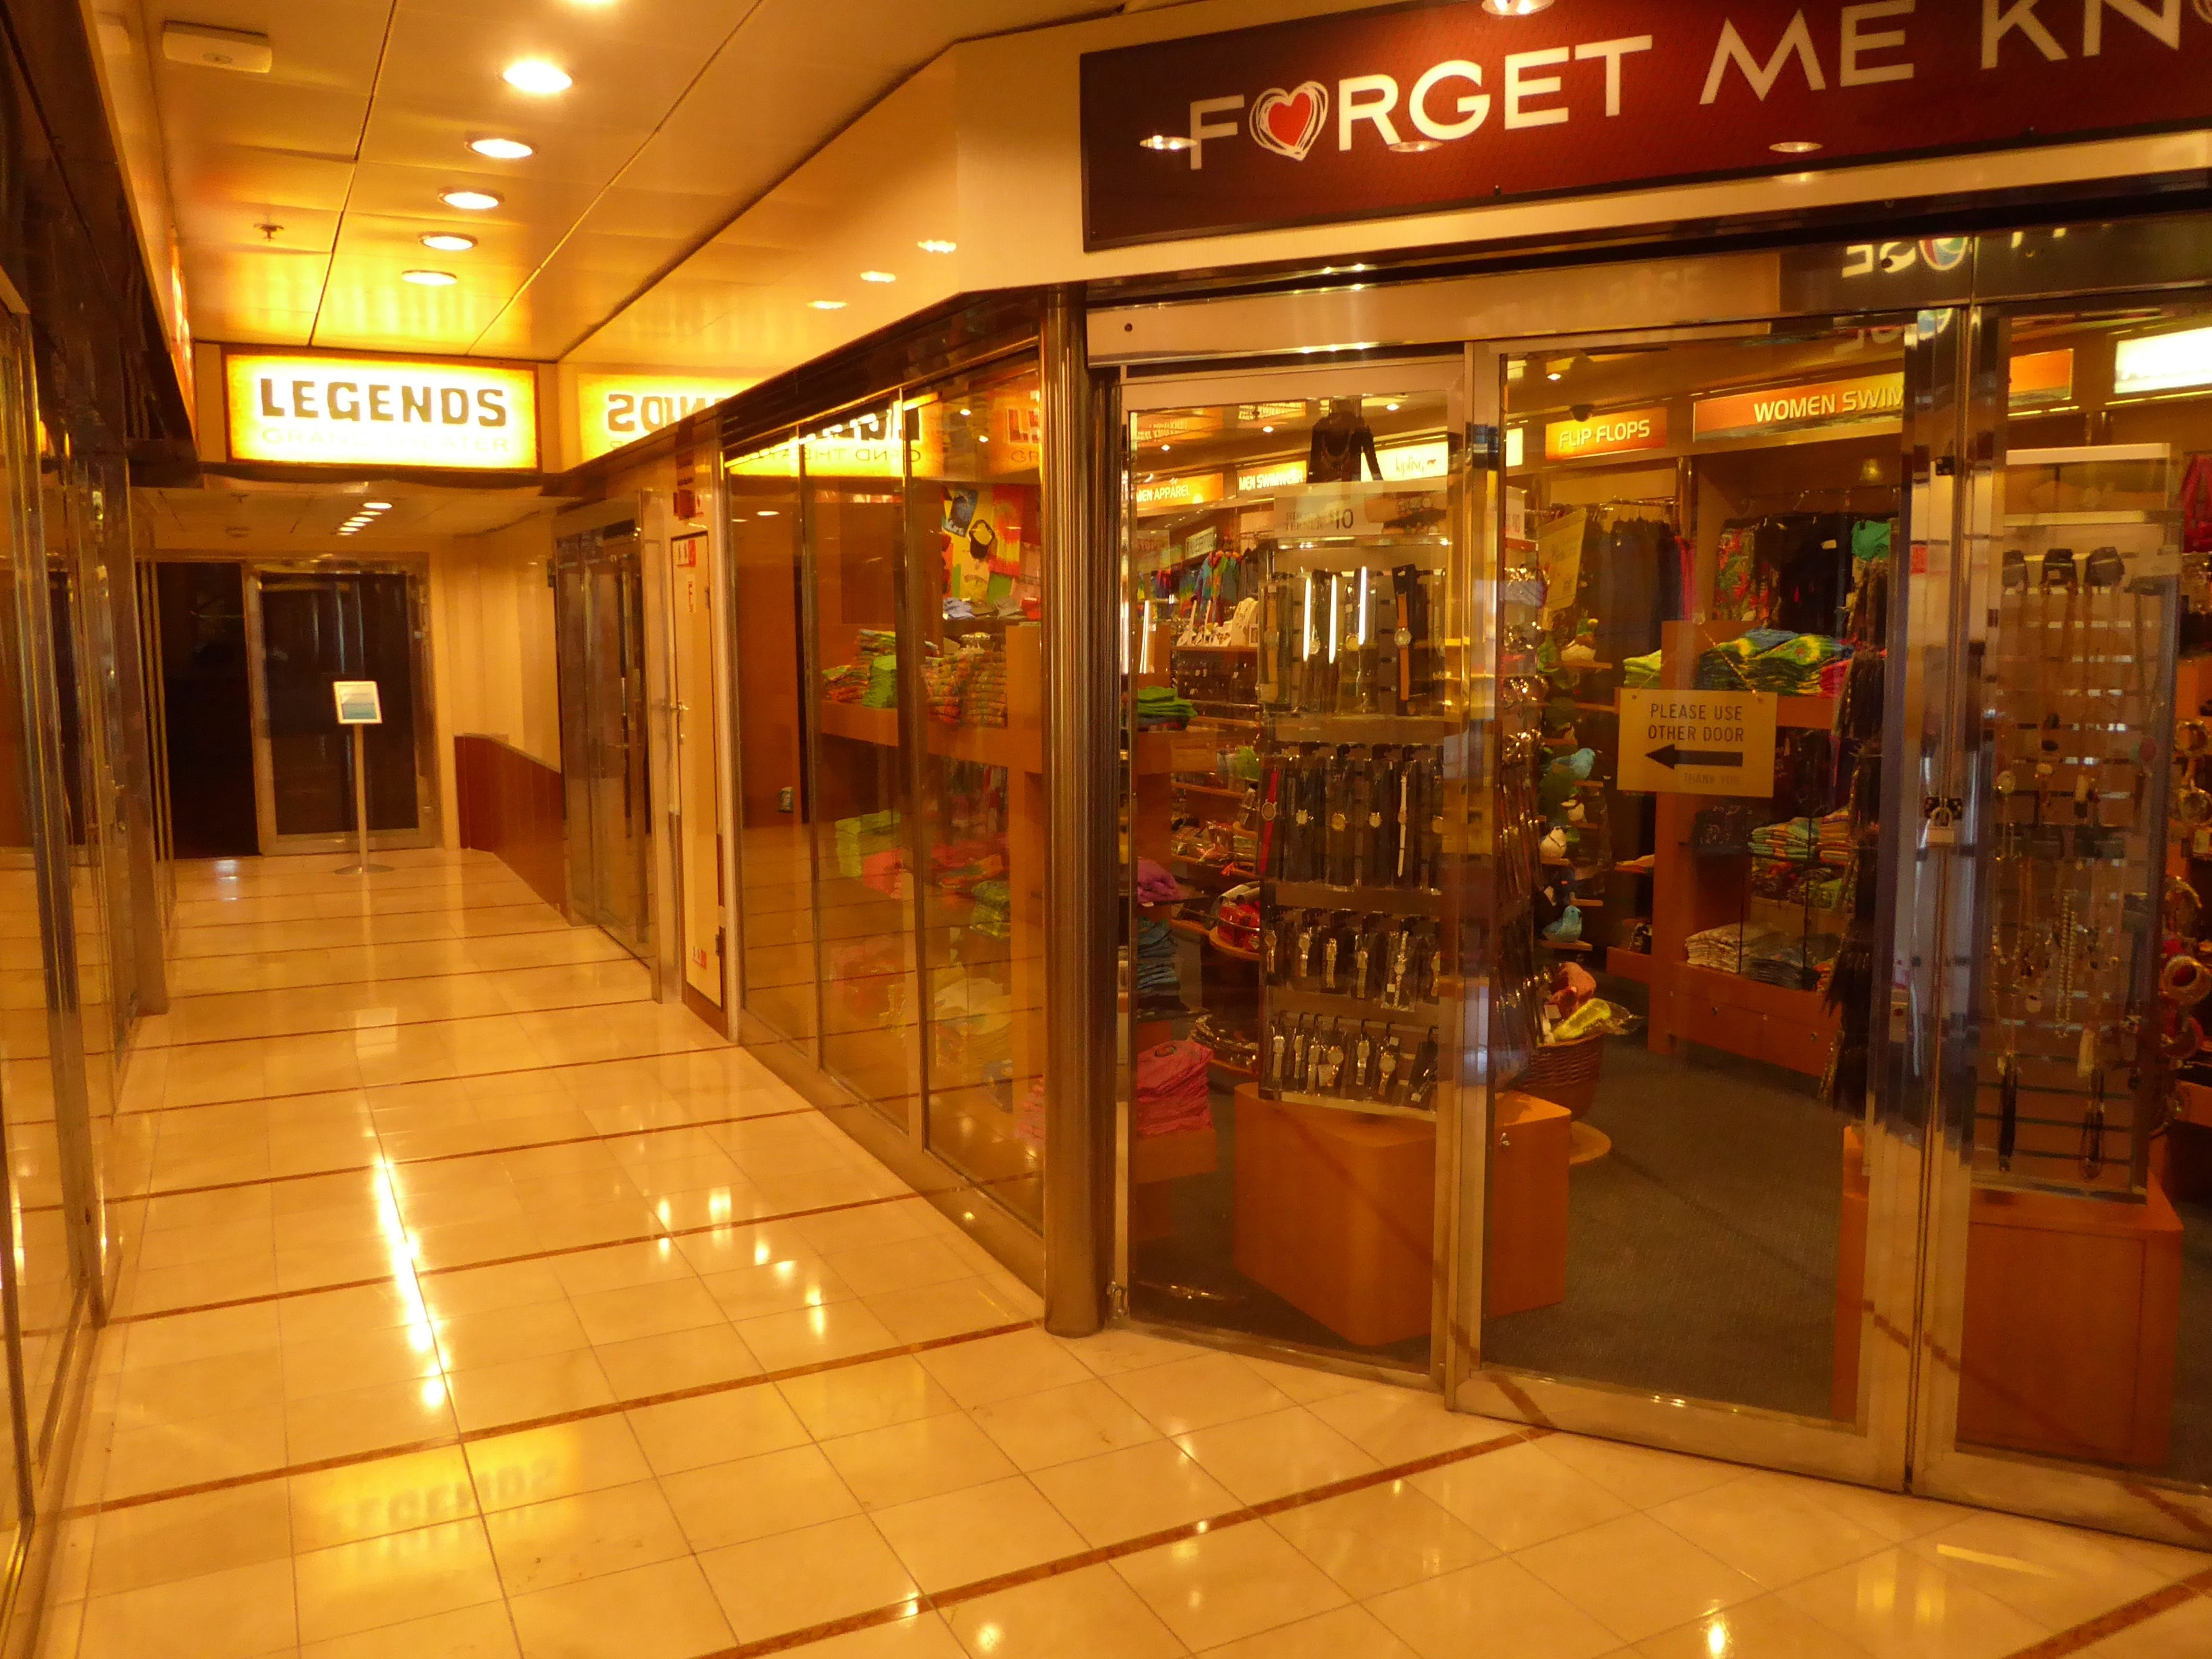 Forget Me Knot is a duty-free shop off the Aries Deck (8) entrance to the Legends Grand Theater.